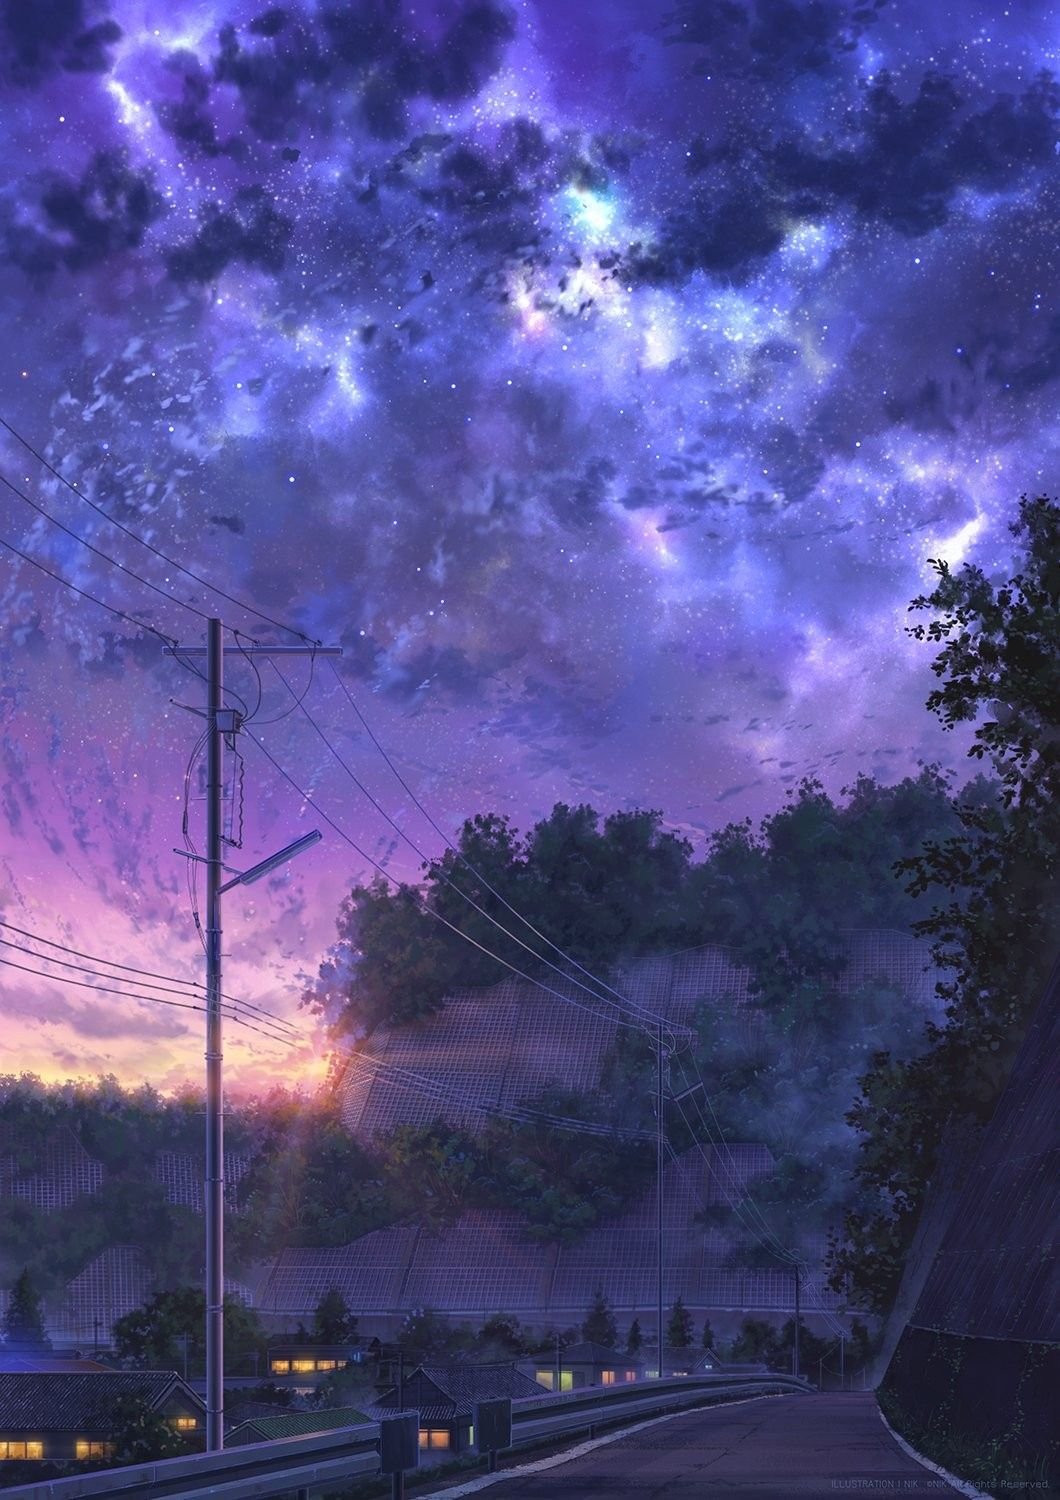 Anime sky art kawaii Wallpaper Sunset View night